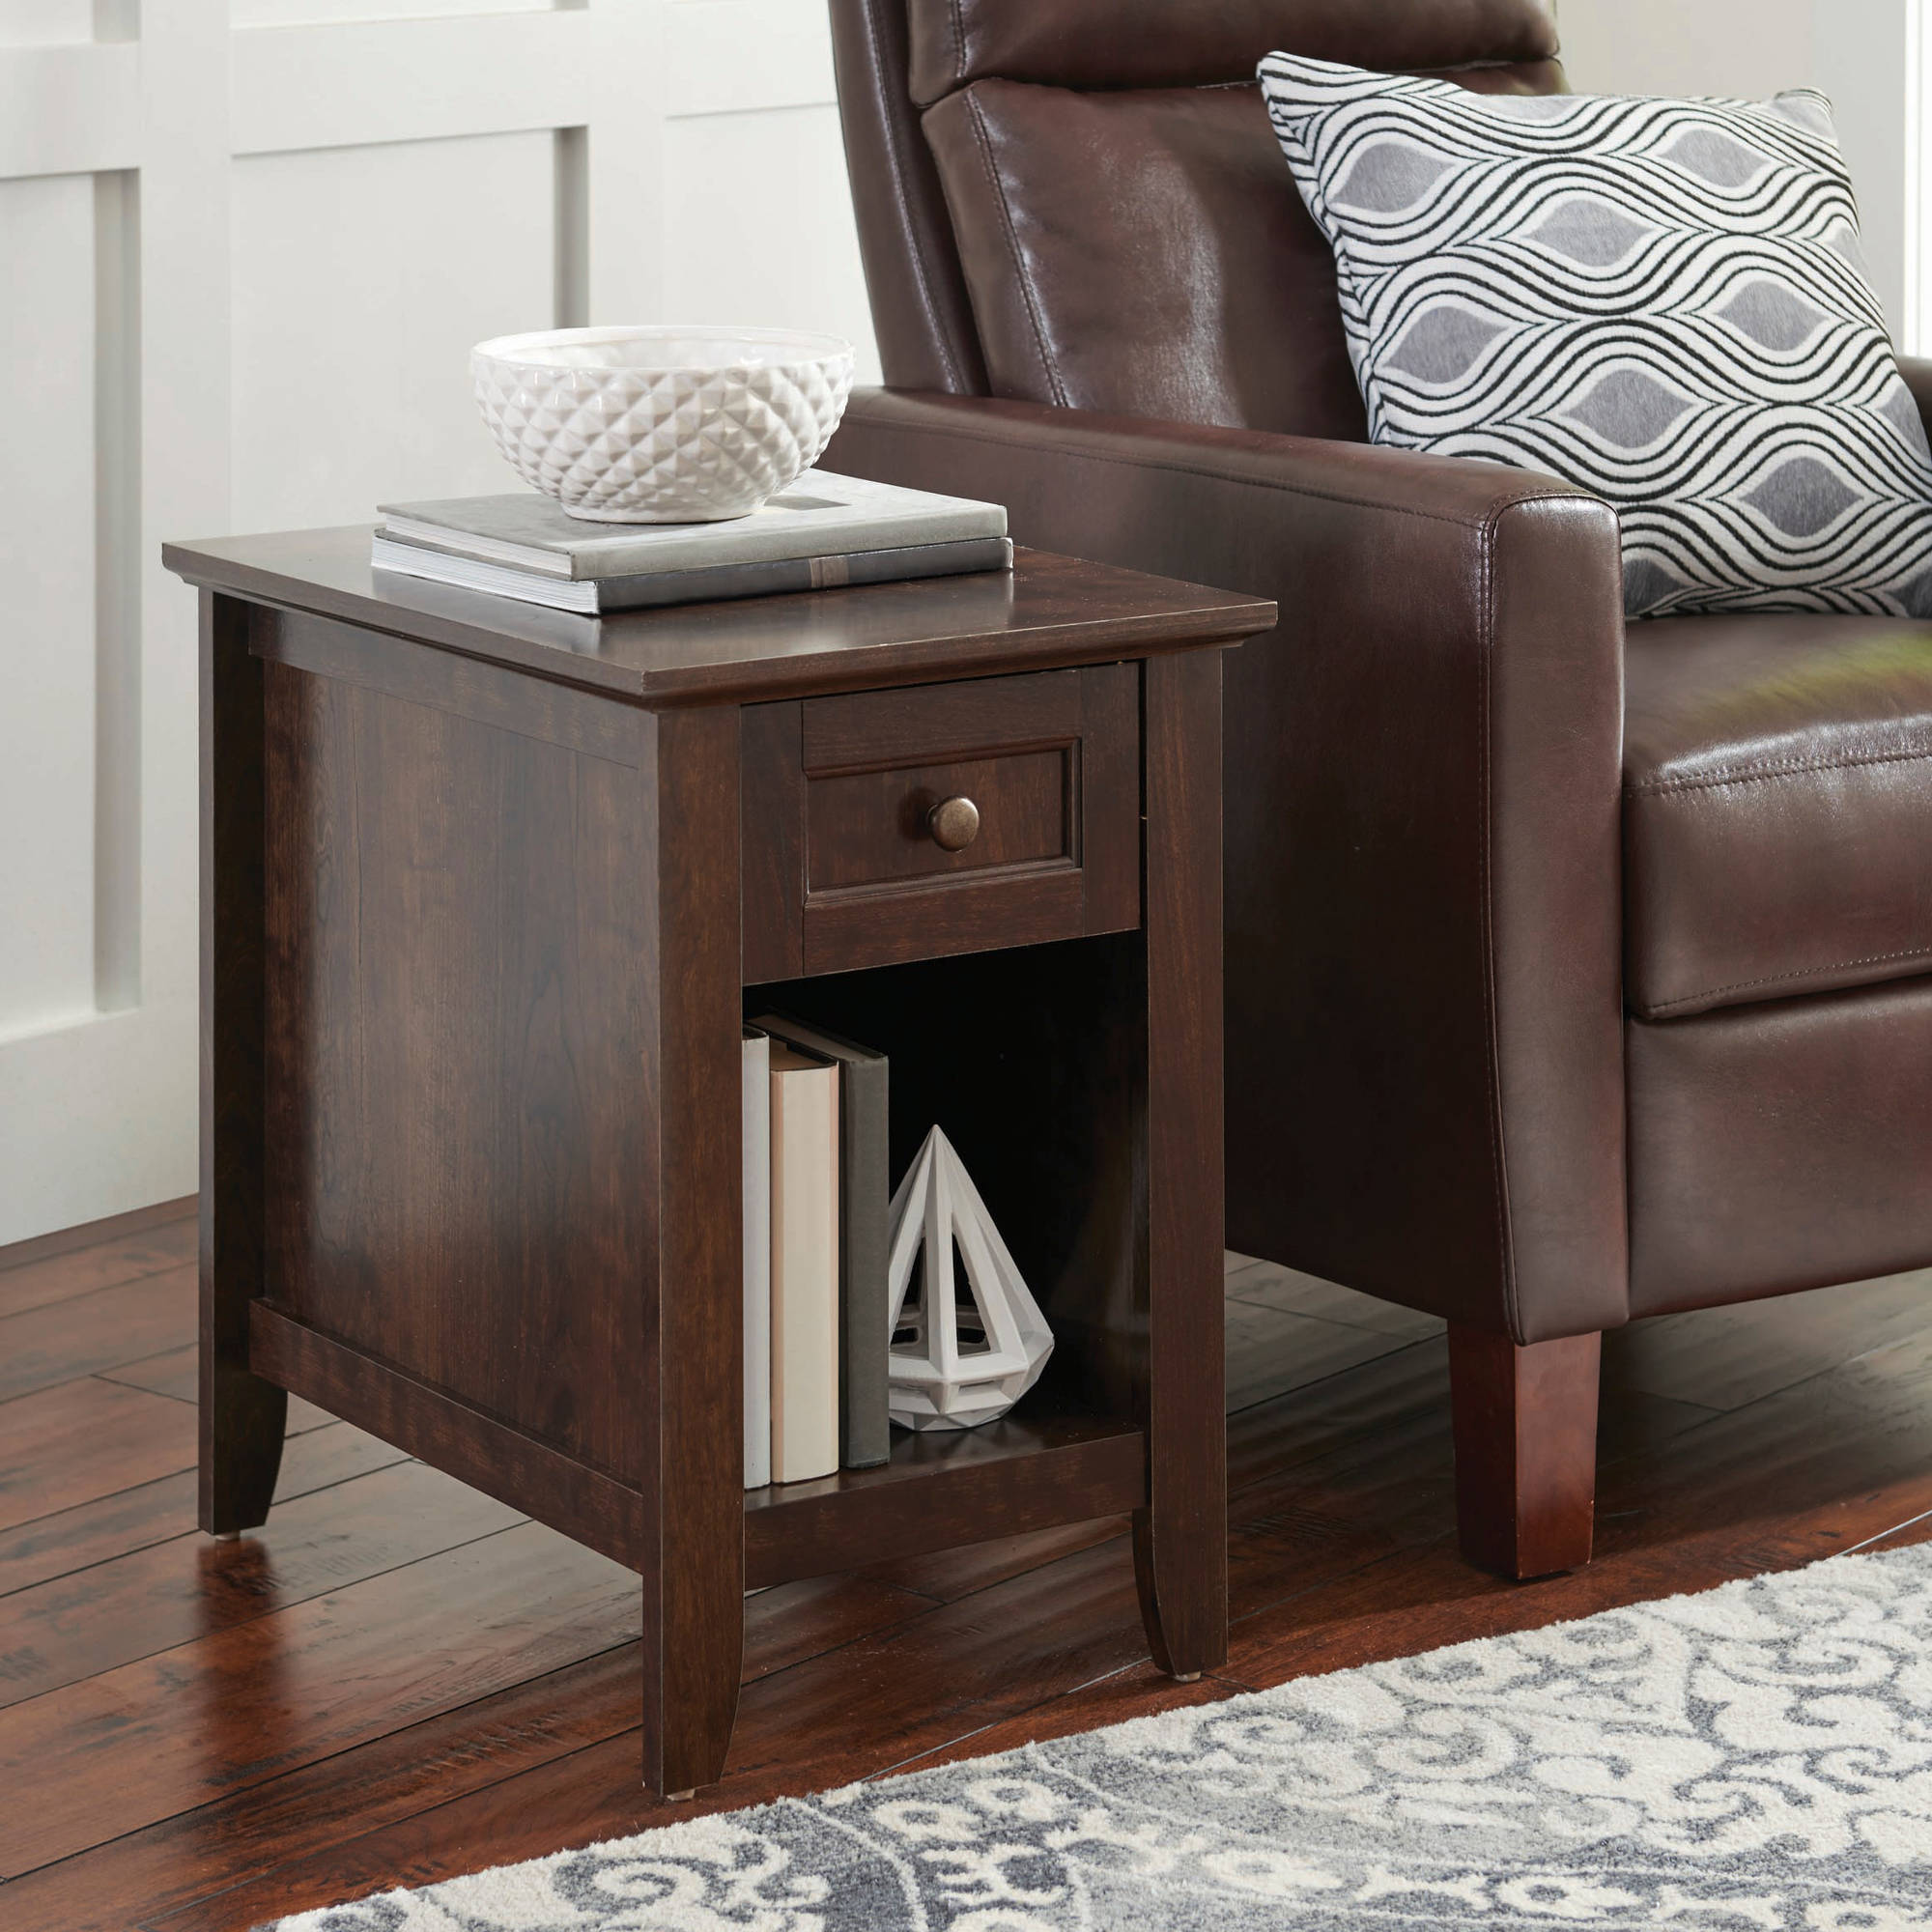 Better Homes and Gardens Parker Recliner Side Table  Estate Toffee Finish. End Tables   Walmart com